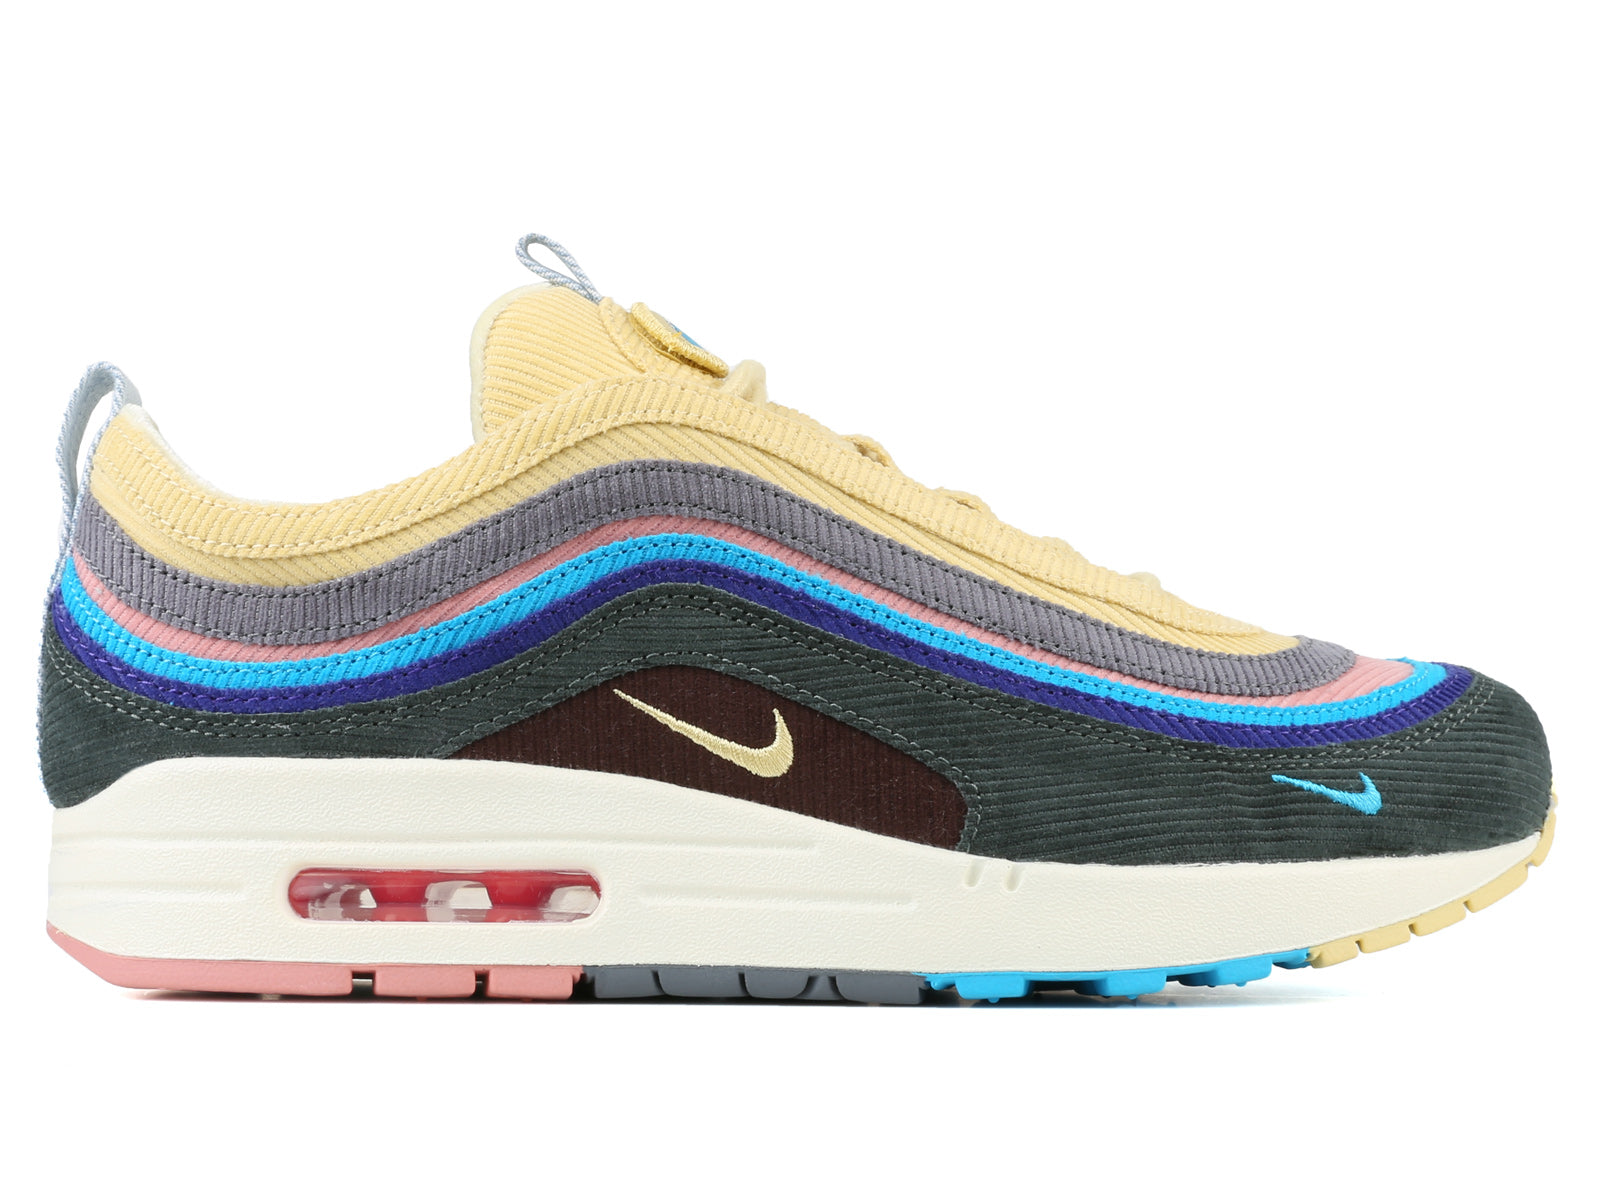 dfe0c57a2f Shop our Nike Collection. March 22, 2018 Eddie Herrera-Sanchez. Tags: Air  Max 1/97 · Nike · upcoming release · Wotherspoon